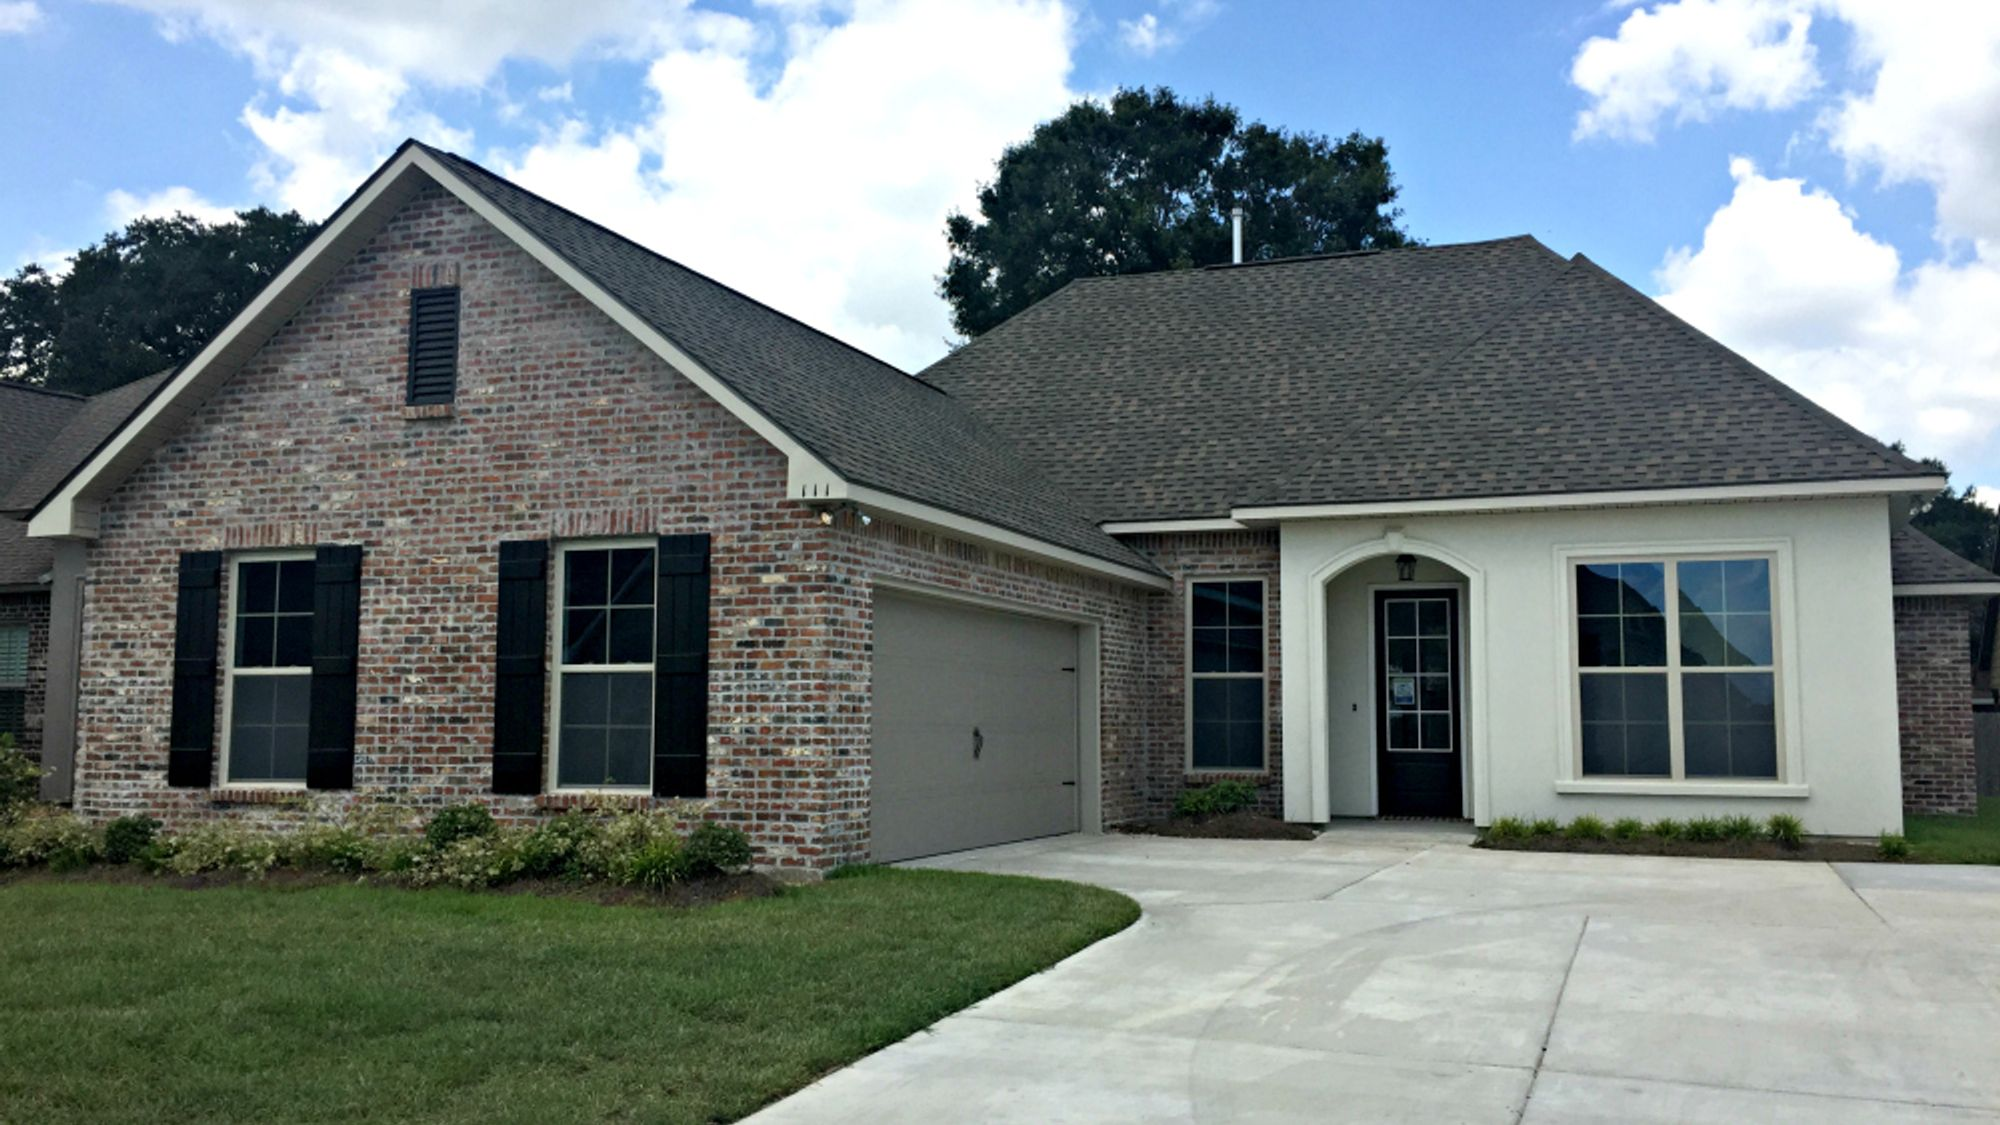 Front View - Laurel Grove Community - DSLD Homes Youngsville